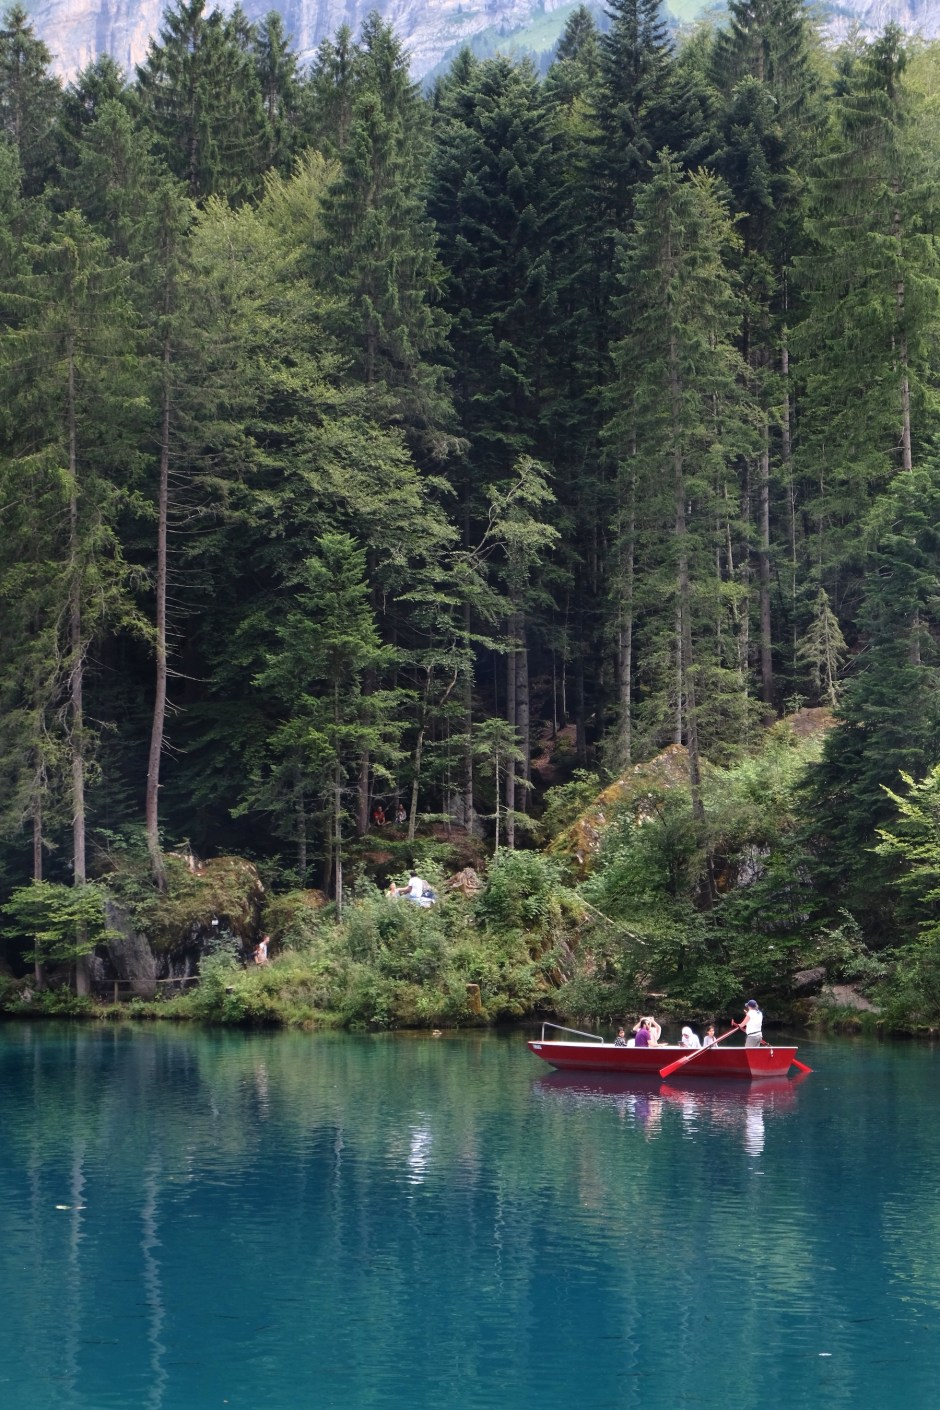 Boat on Lake Blausee